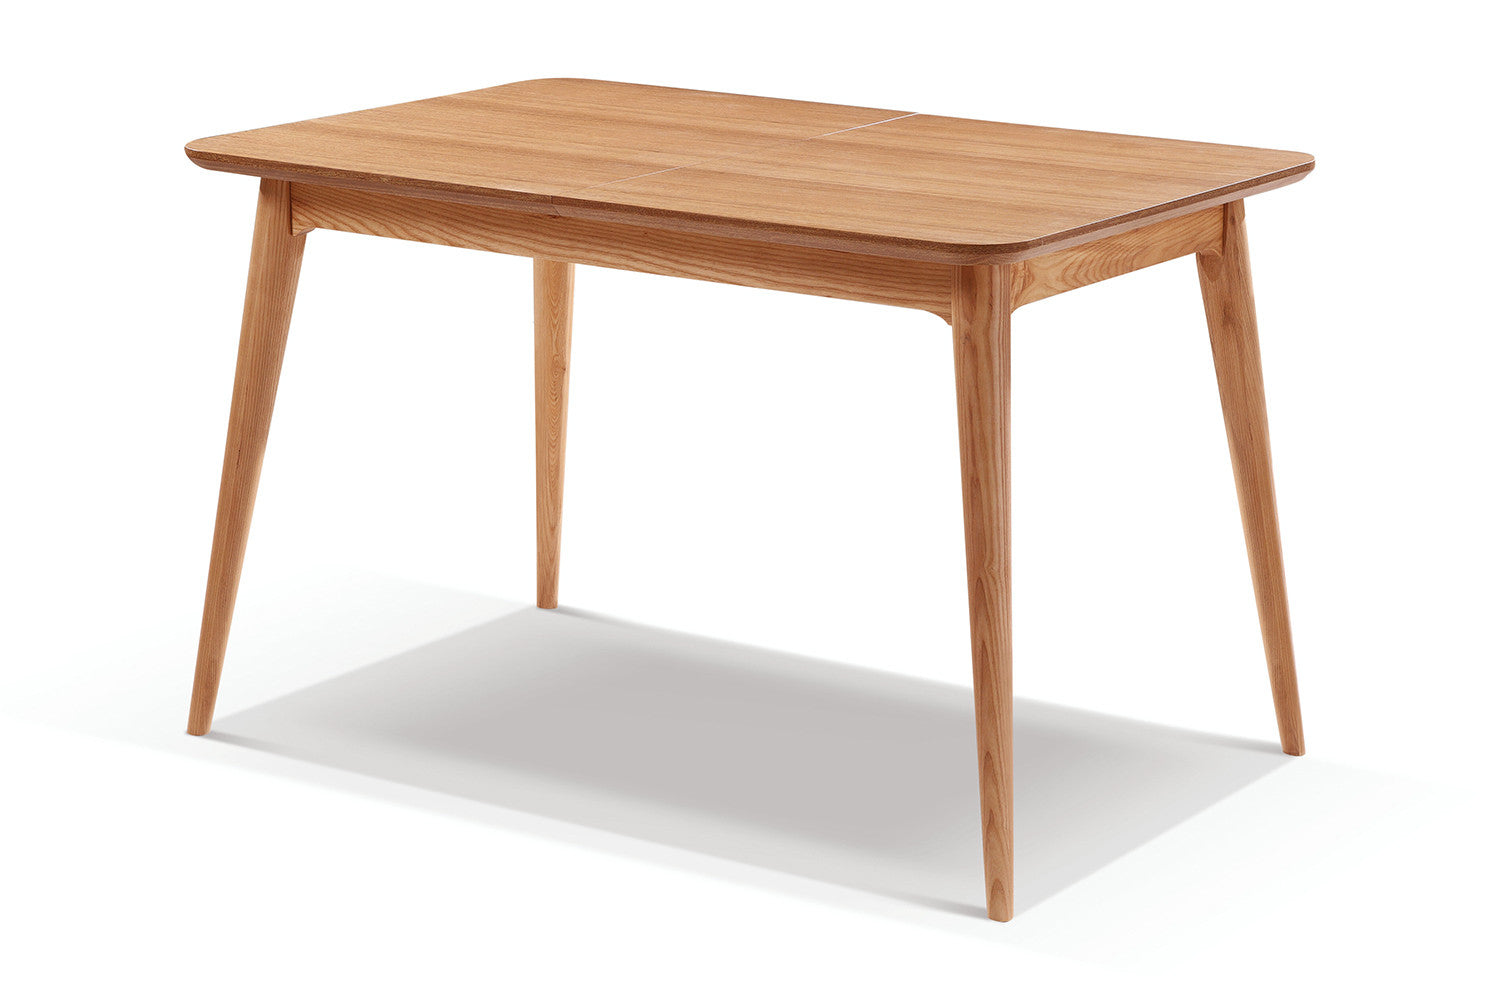 Table de salle manger extensible en bois adda dewarens for Table extensible bois metal